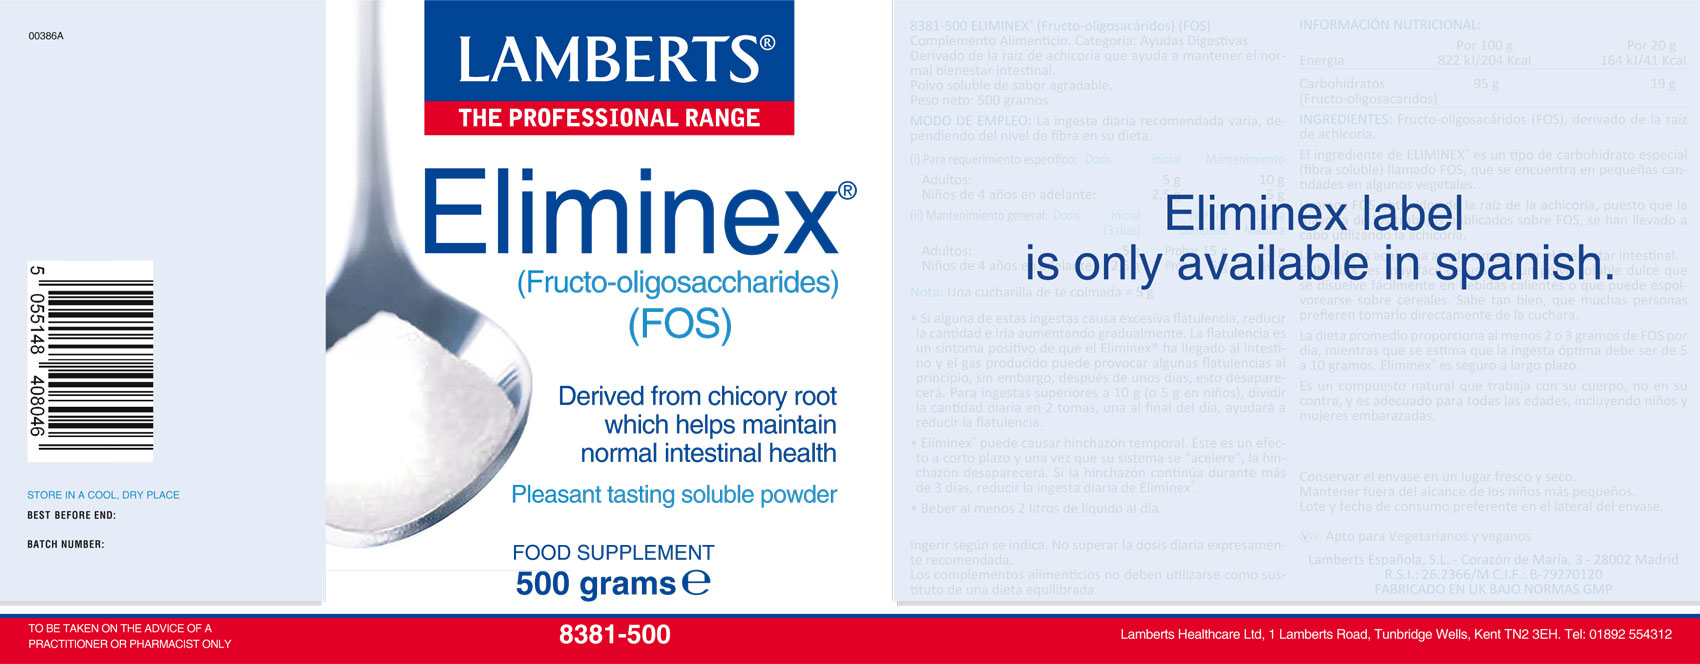 Lamberts Eliminex label only available in spanish